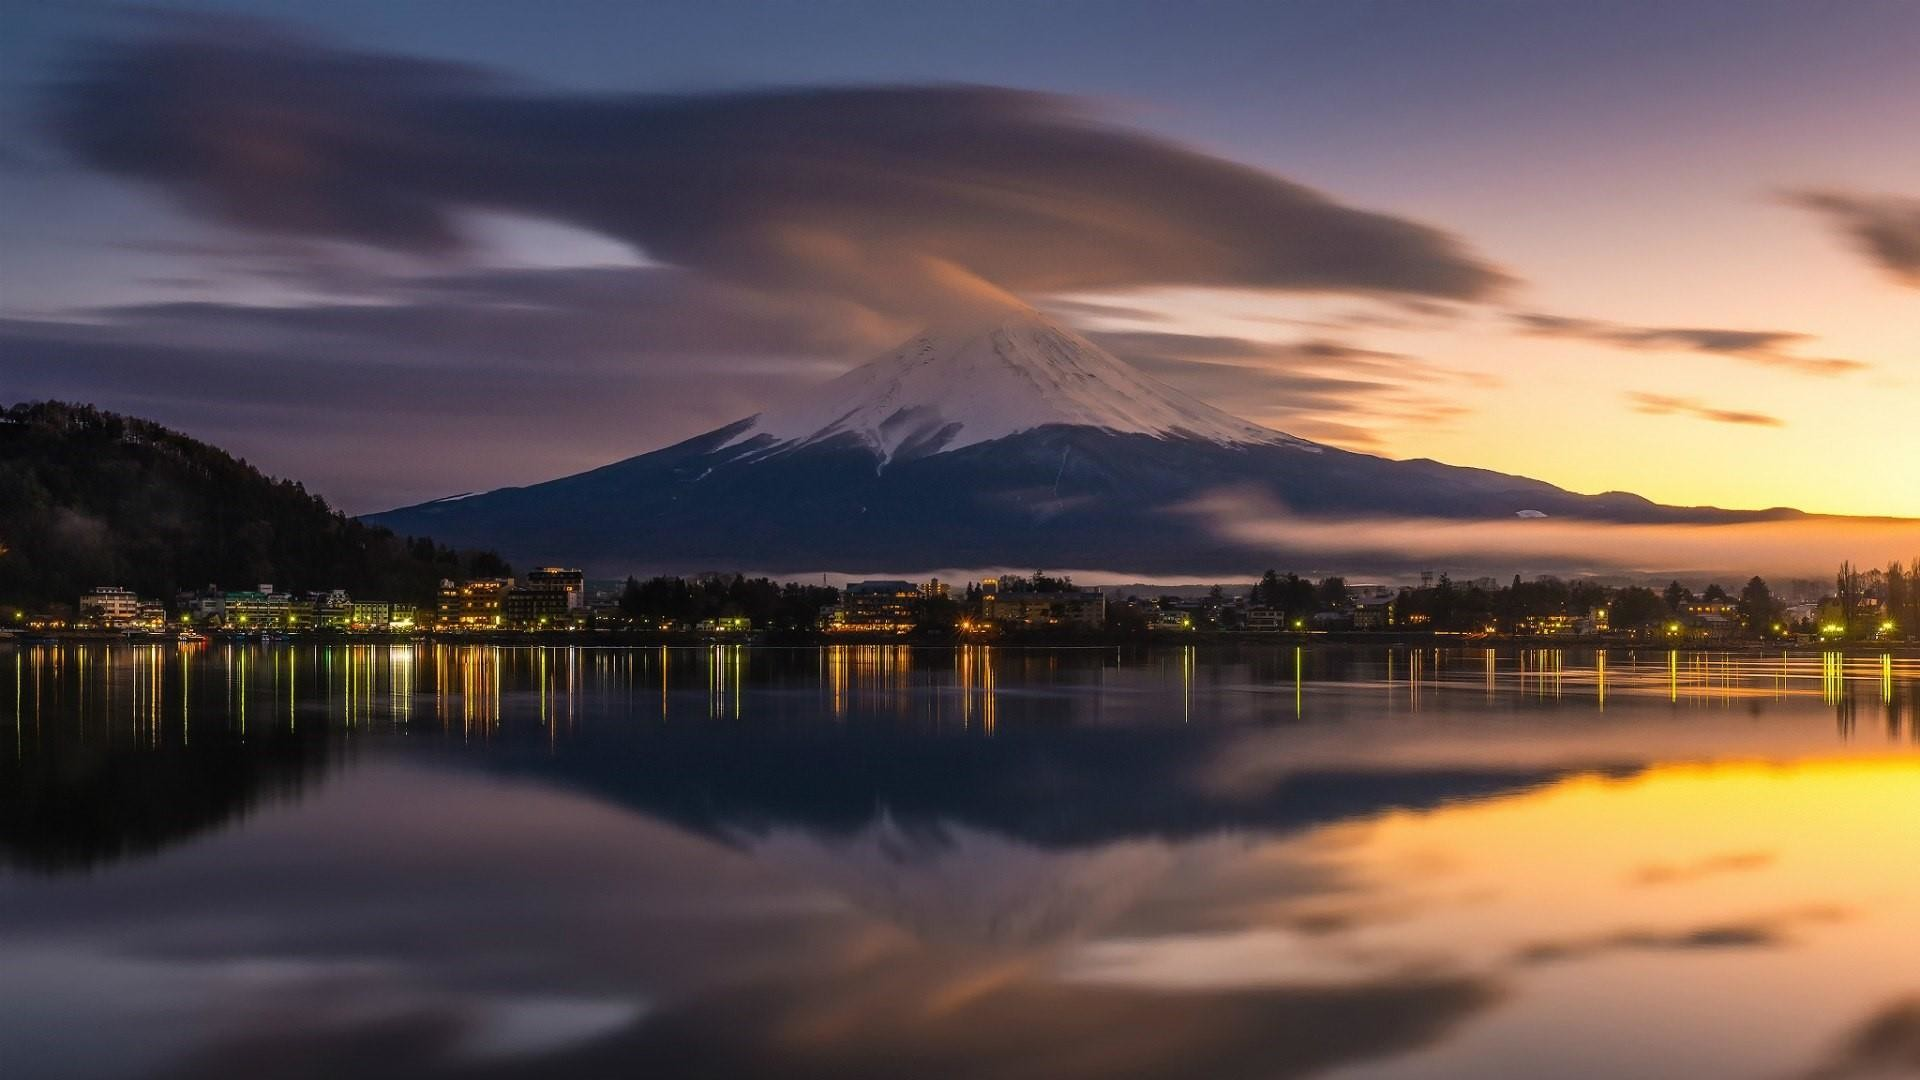 Res: 1920x1080, Lake Kawaguchi And Mount Fuji Wallpaper   Wallpaper Studio 10   Tens of  thousands HD and UltraHD wallpapers for Android, Windows and Xbox